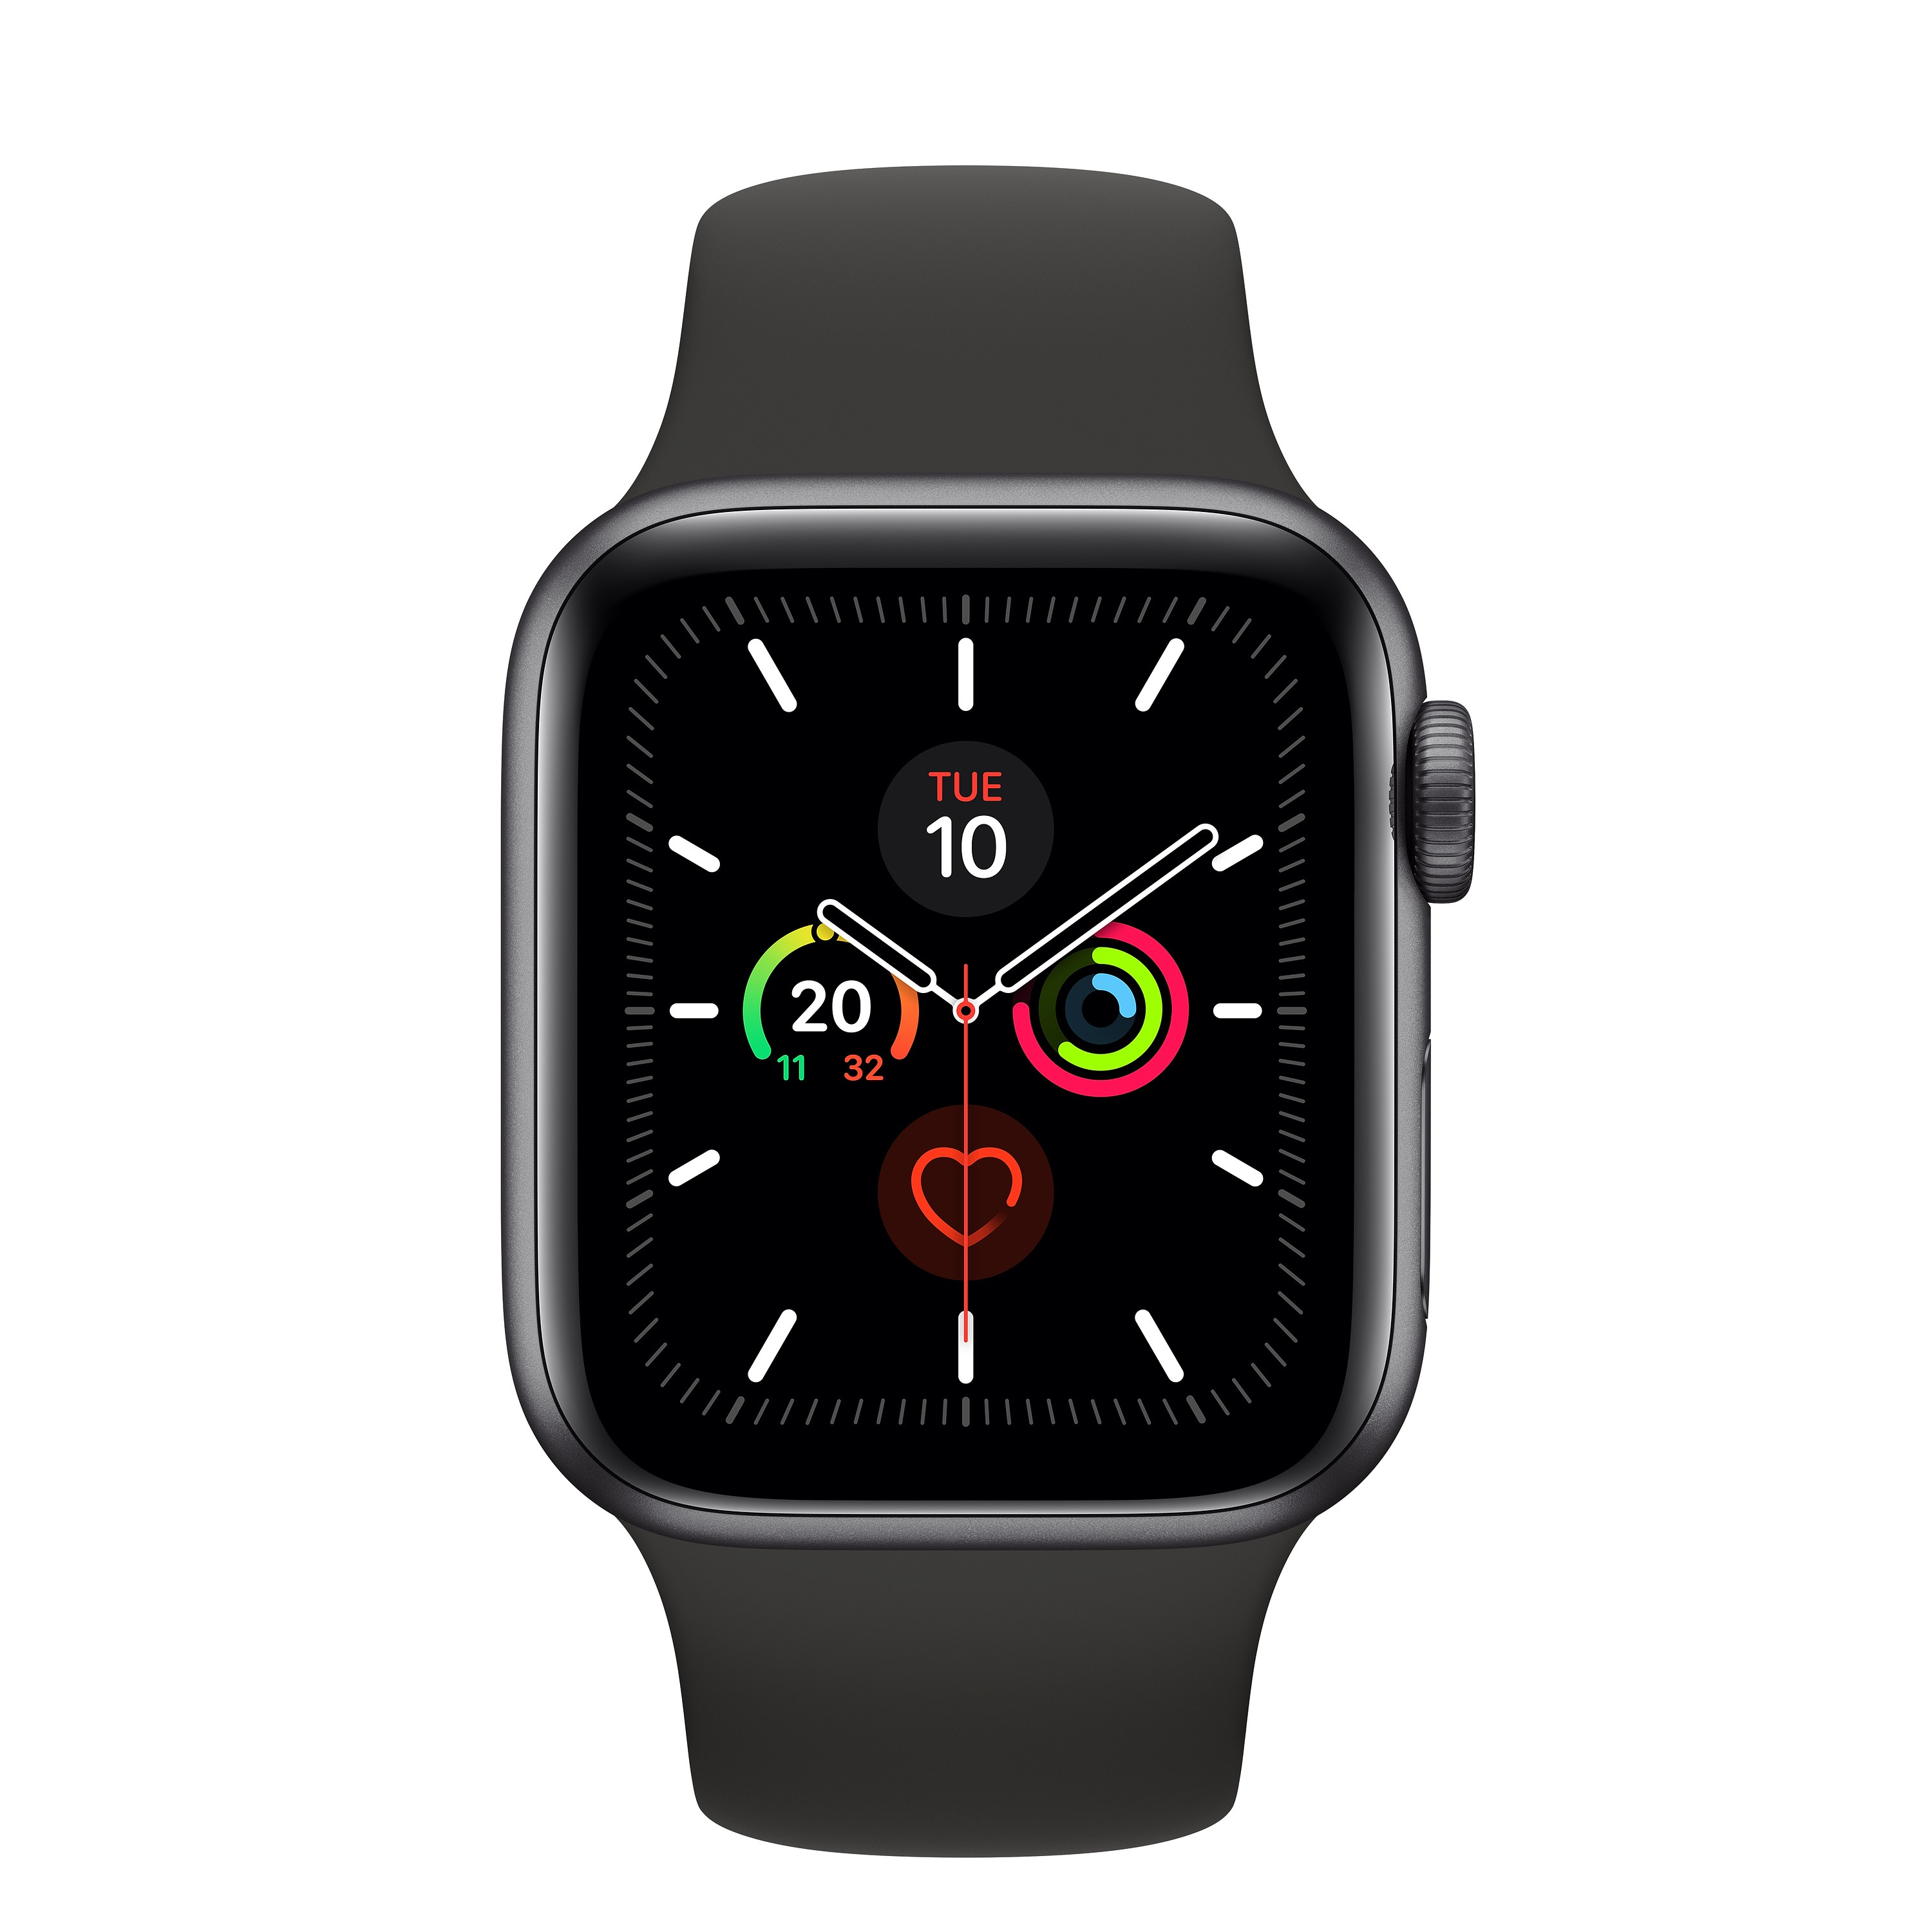 Korting Apple Watch Series 5 (40 mm) Aluminium met zwarte sportband smartwatch